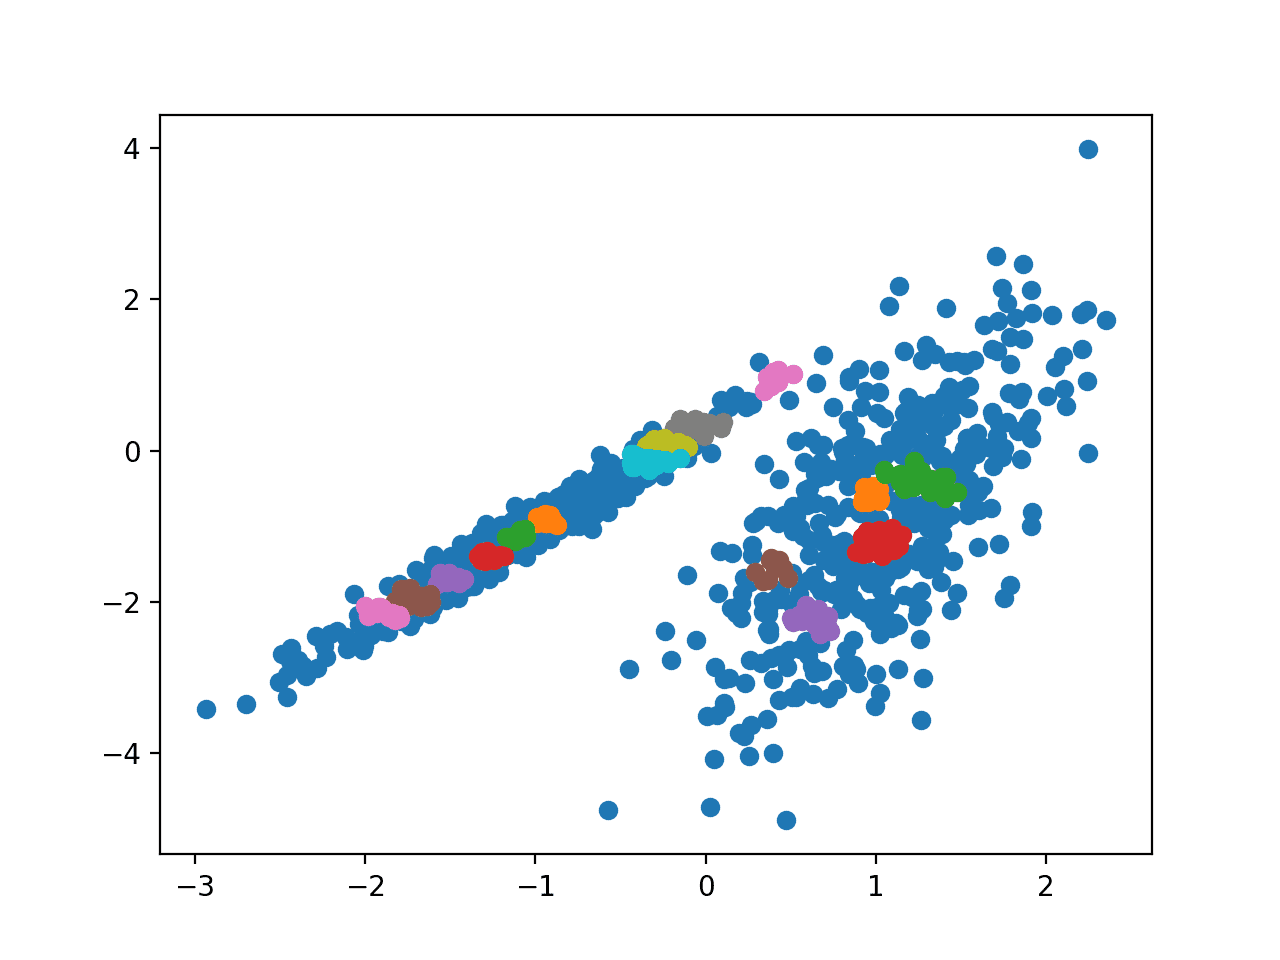 Scatter Plot of Dataset With Clusters Identified Using OPTICS Clustering